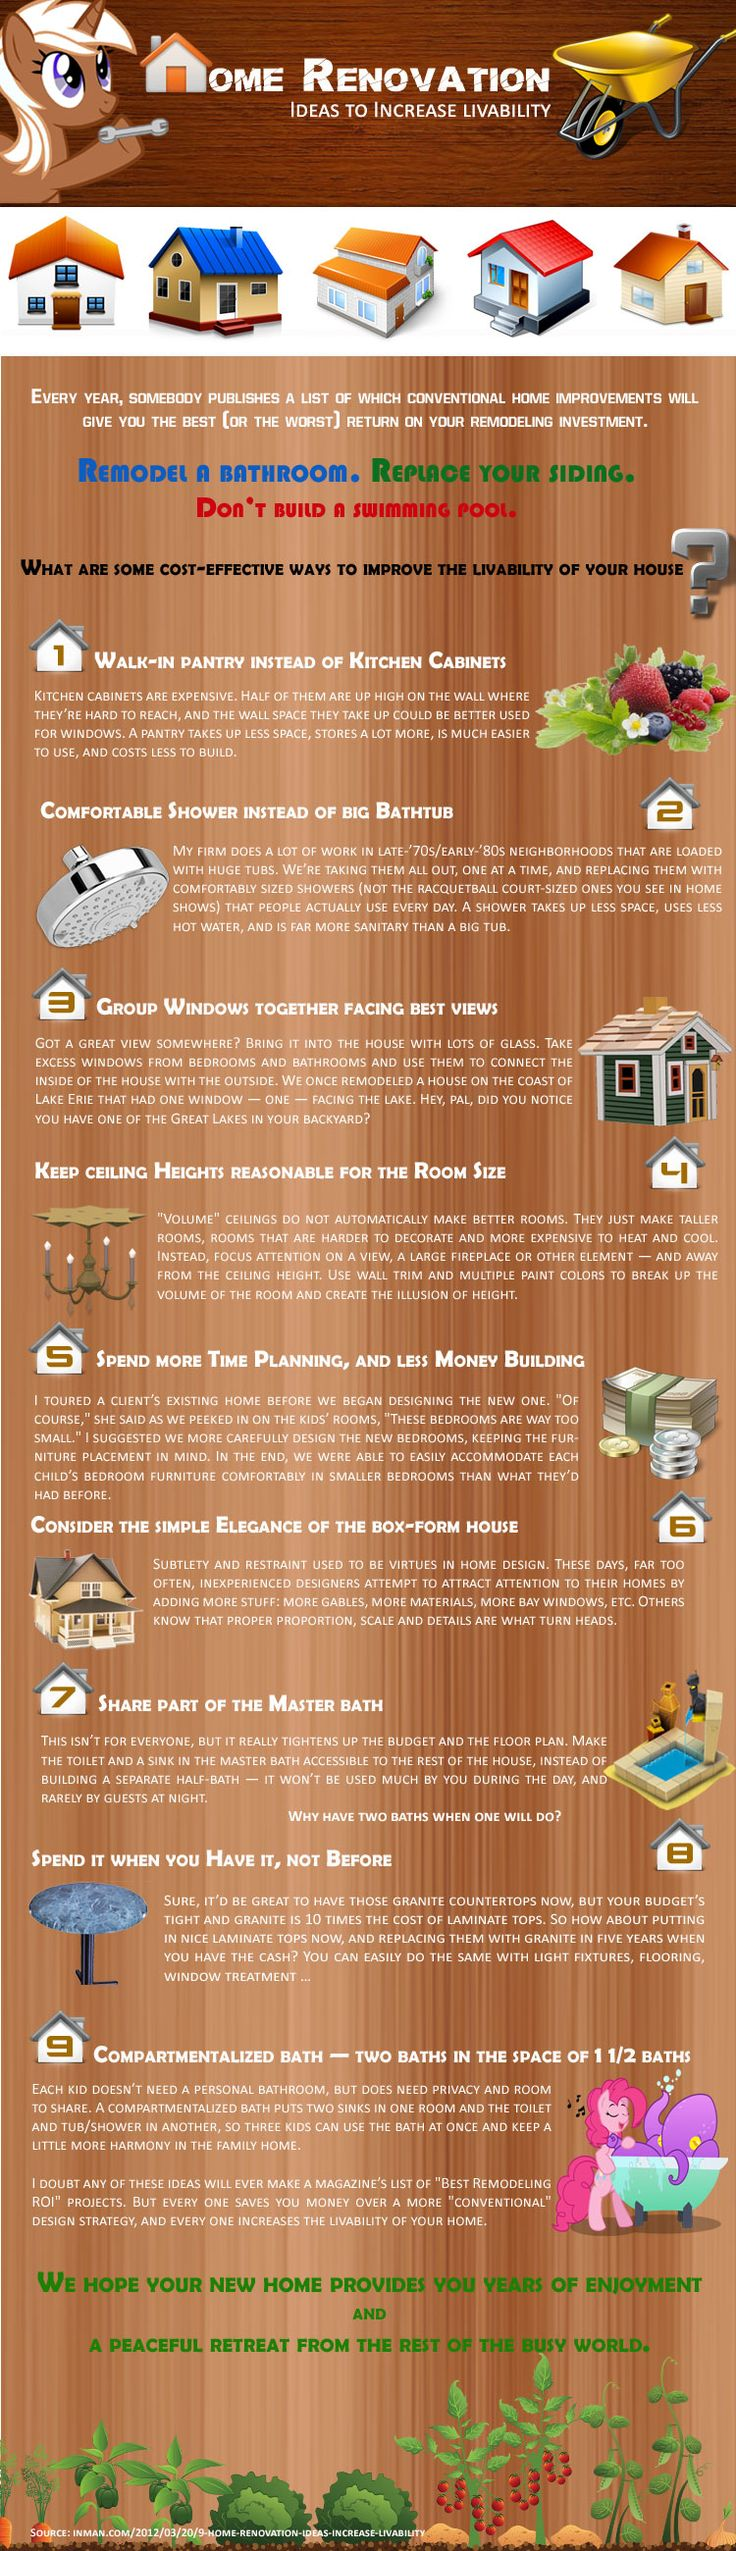 home-renovation-tips-to-increase-livability-infographic